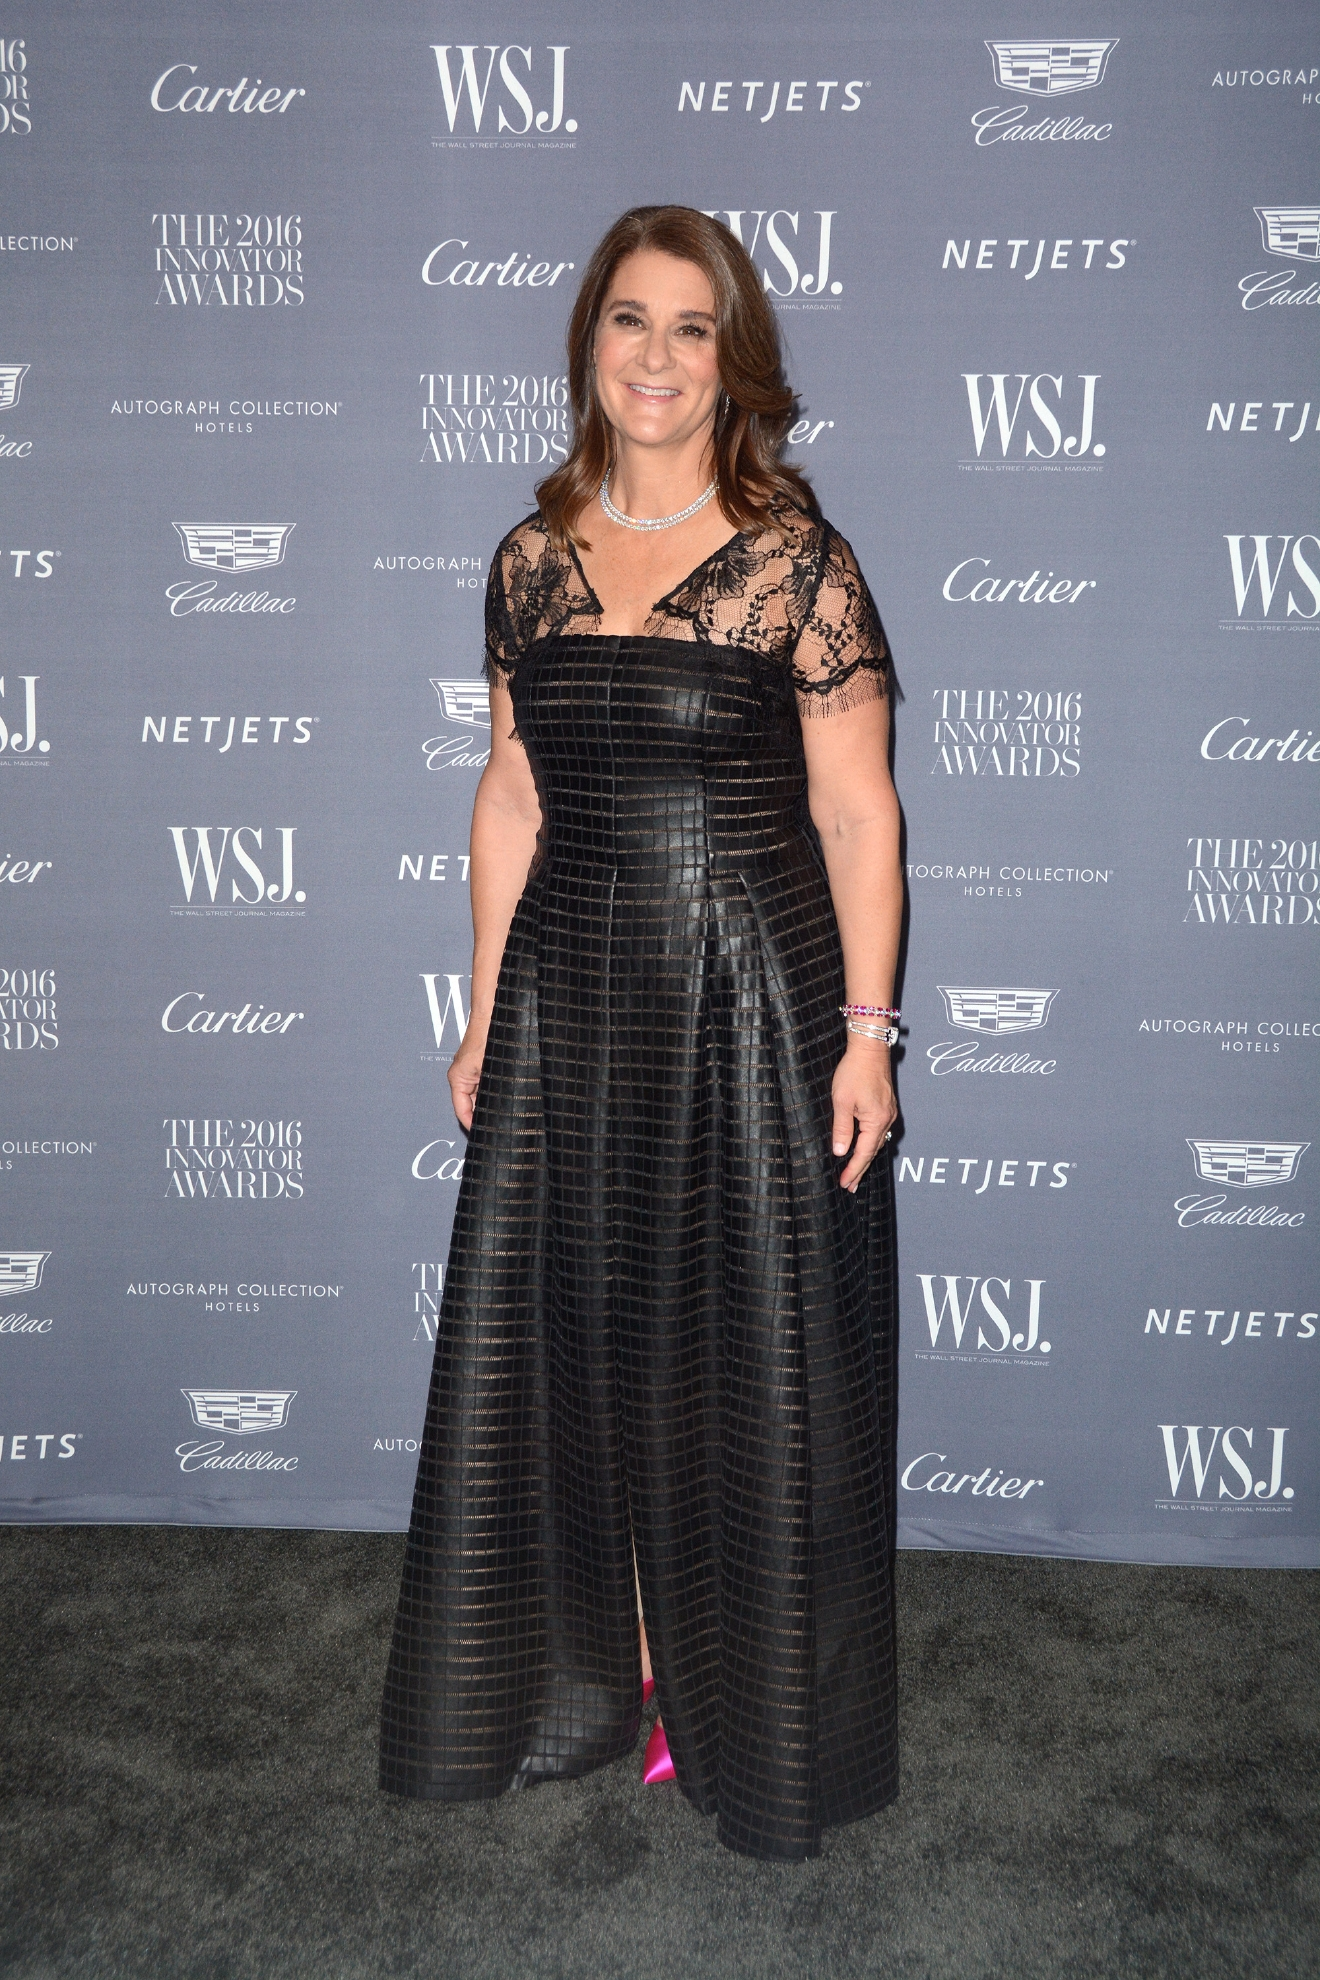 WSJ. Magazine 2016 Innovator Awards - Red Carpet Arrivals at Museum of Modern Art                                    Featuring: Melinda Gates                  Where: New York, New York, United States                  When: 02 Nov 2016                  Credit: Ivan Nikolov/WENN.com